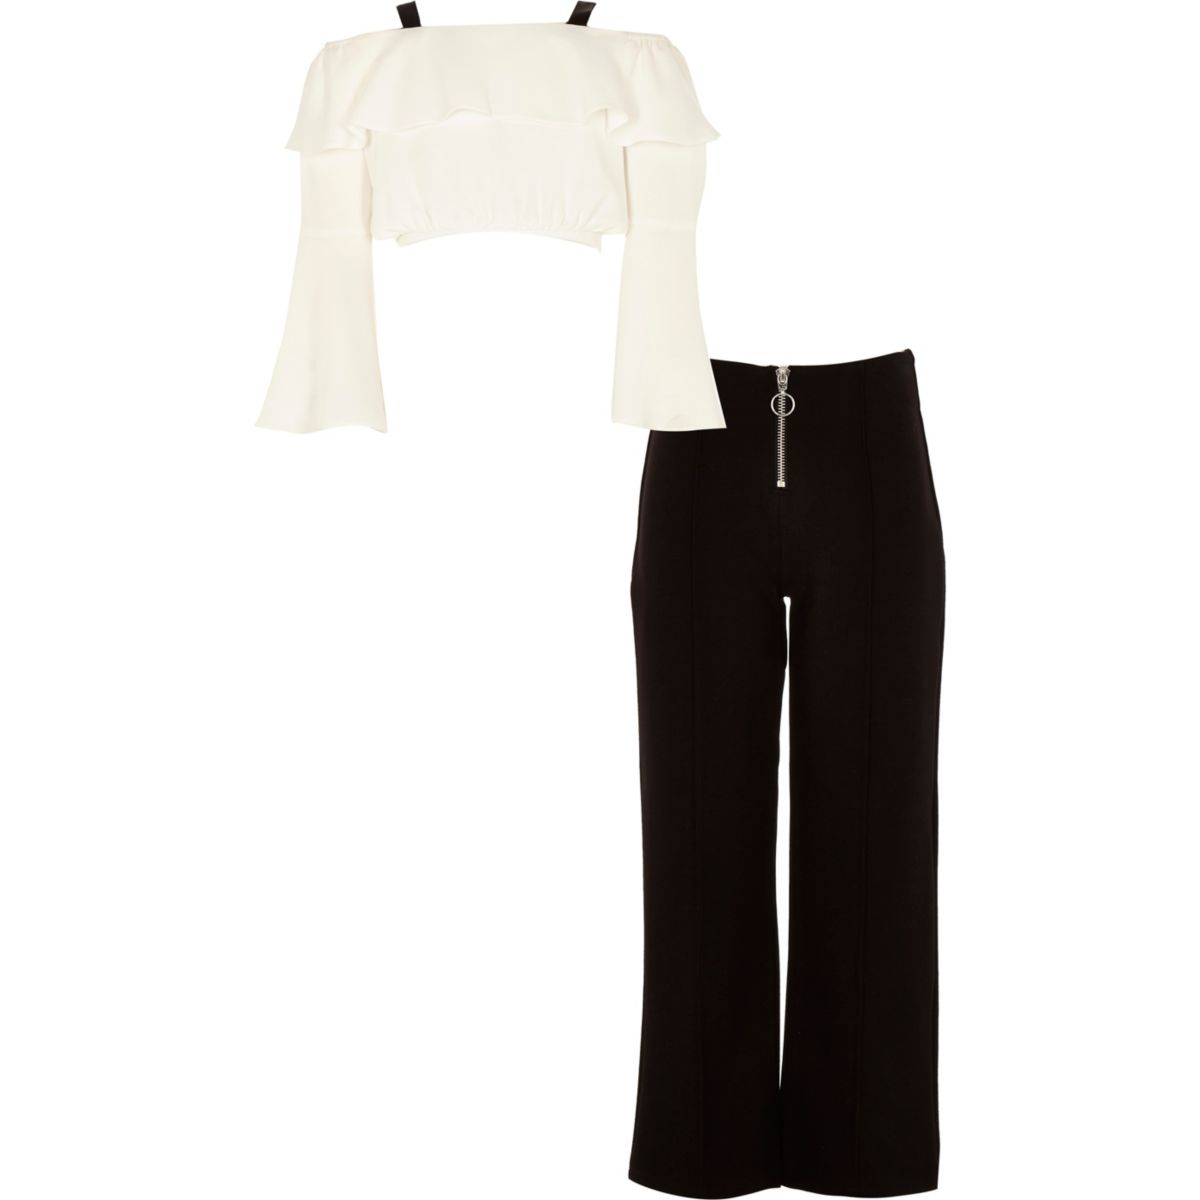 Girls white frill bardot top outfit